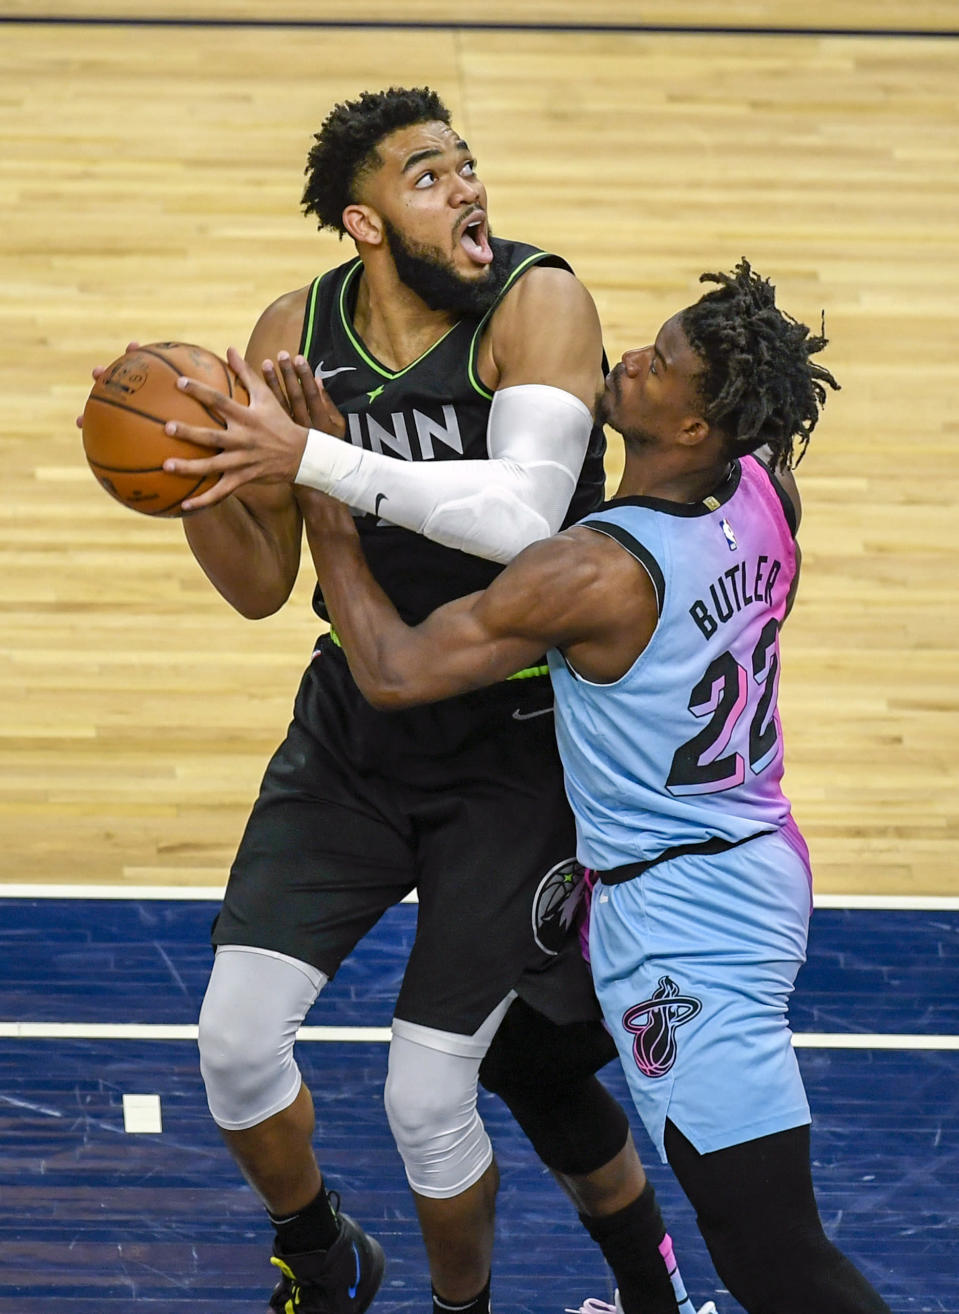 Minnesota Timberwolves center Karl-Anthony Towns, left, is fouled by Miami Heat forward Jimmy Butler during the second half of an NBA basketball game Friday, April 16, 2021, in Minneapolis. The Timberwolves won 119-111. (AP Photo/Craig Lassig)